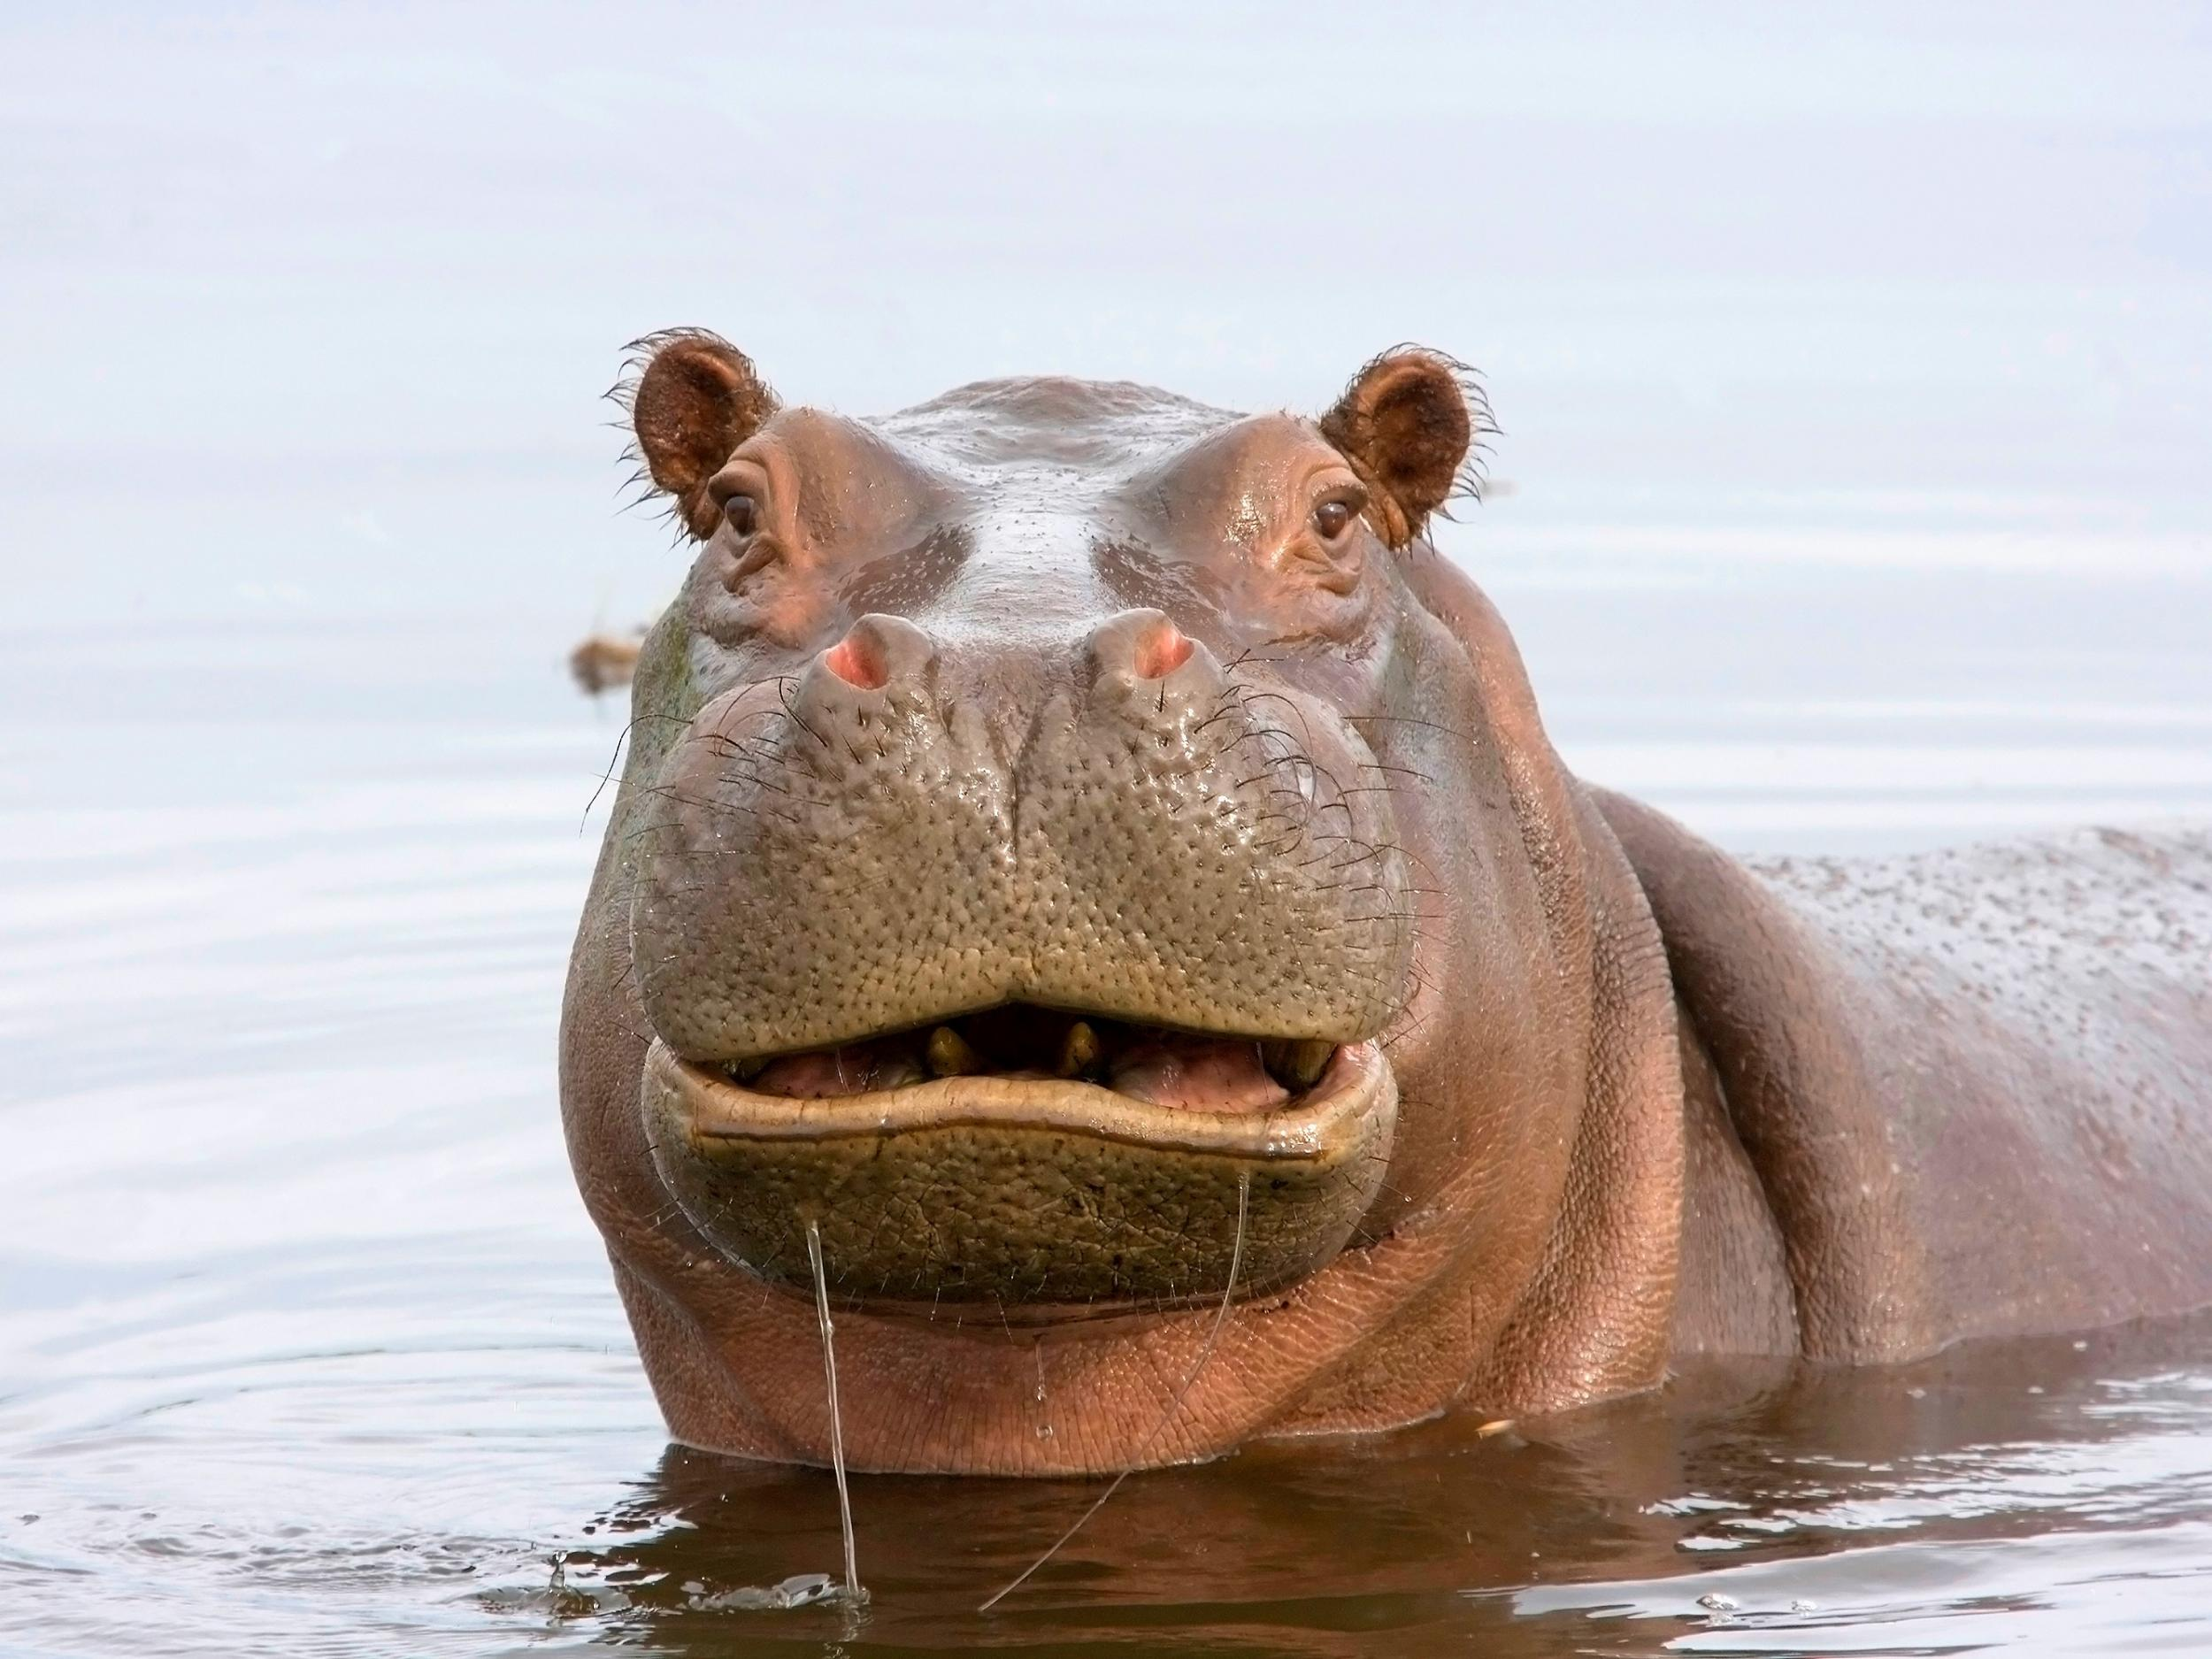 Hippo dung shortages caused by hunting could endanger fish and communities on Africa's great lakes, study shows